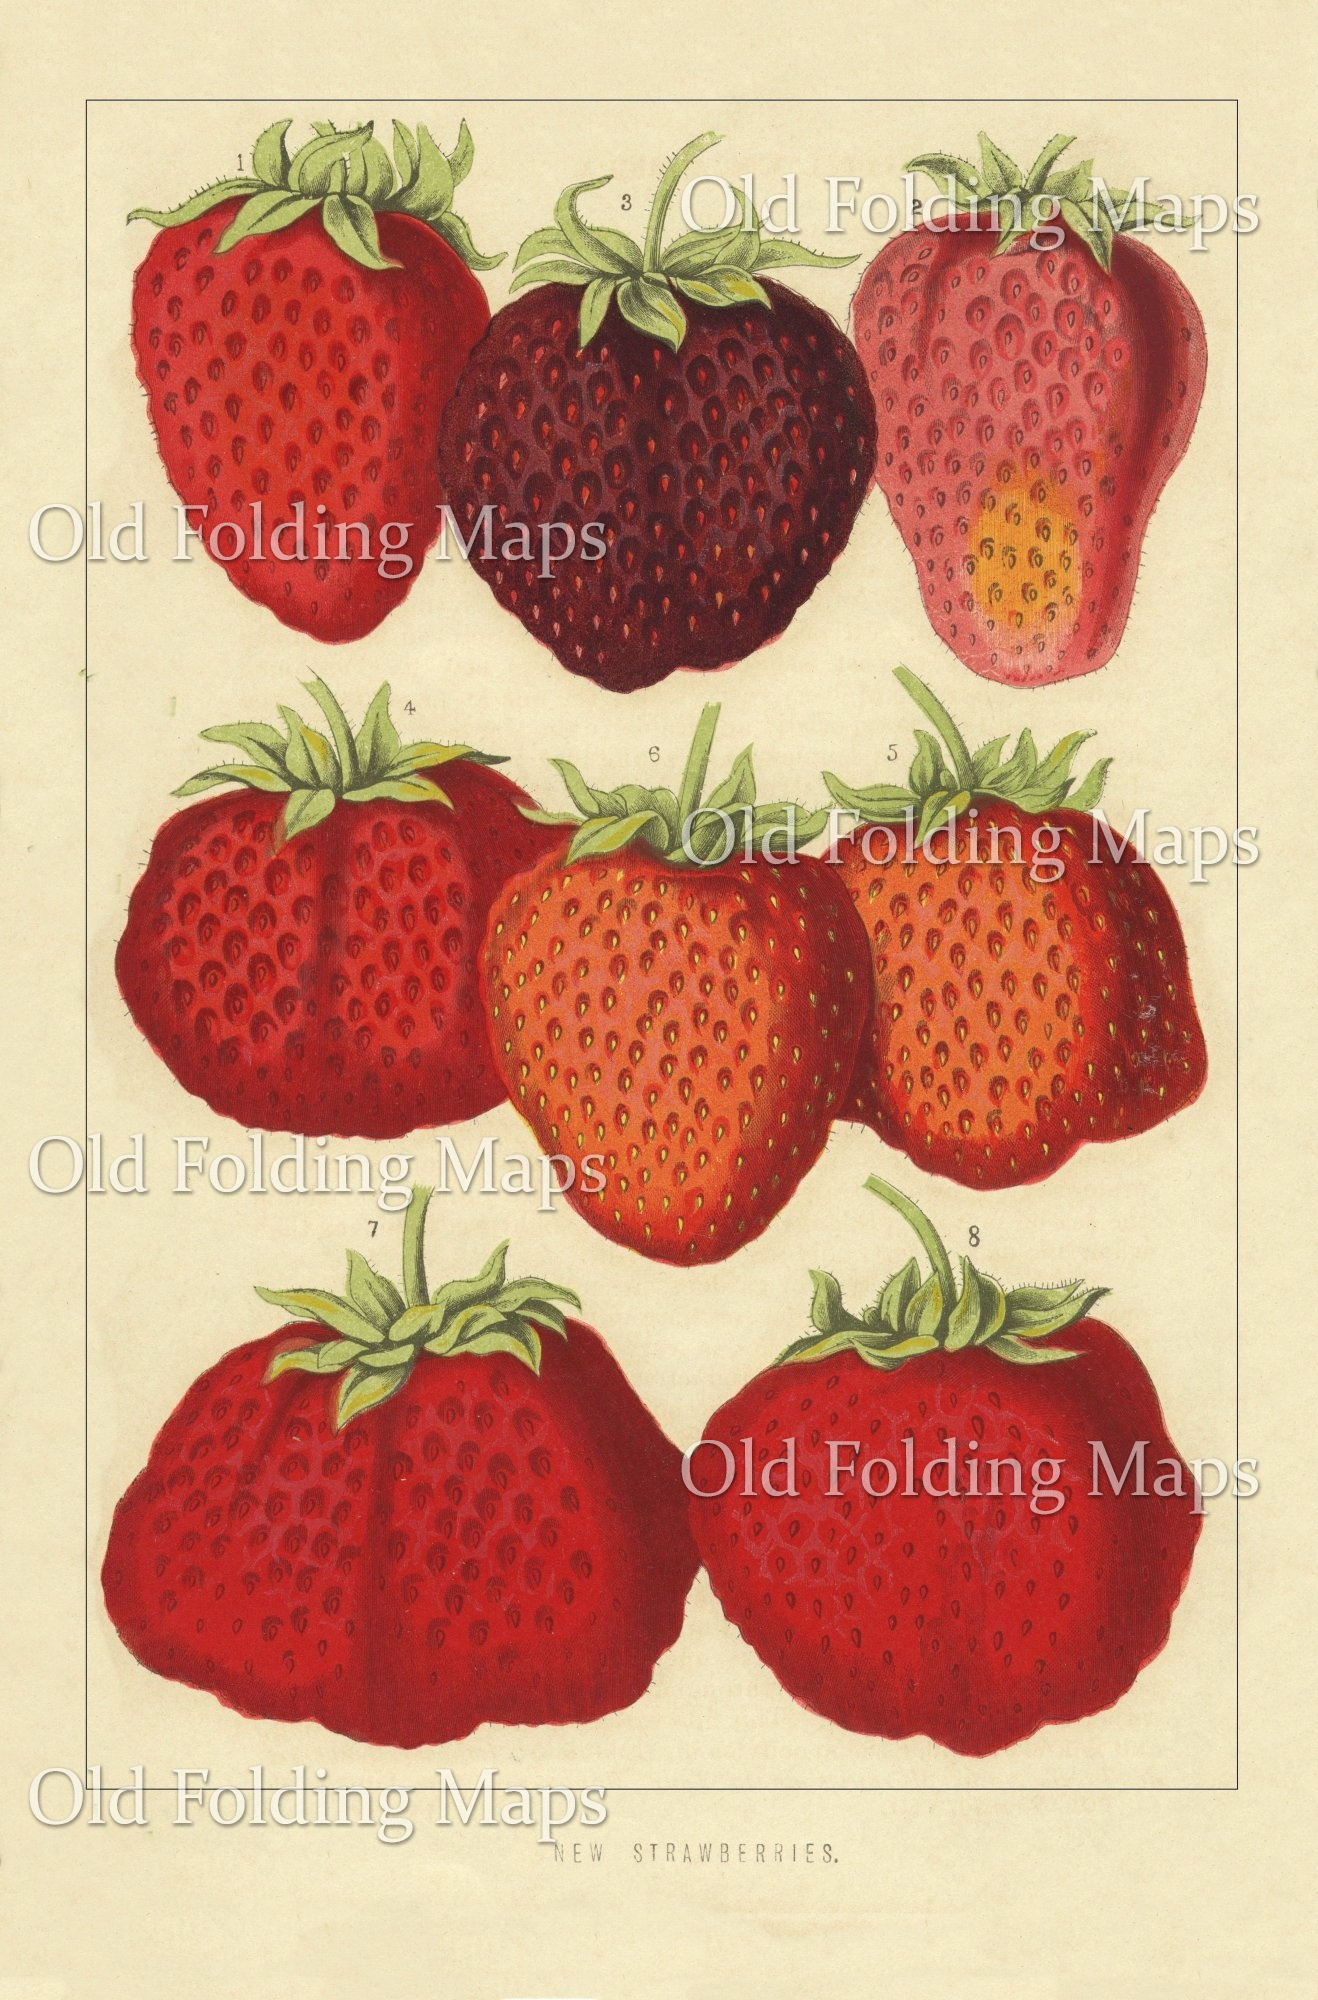 Antique Illustration of Fruit - New Strawberries circa 1880